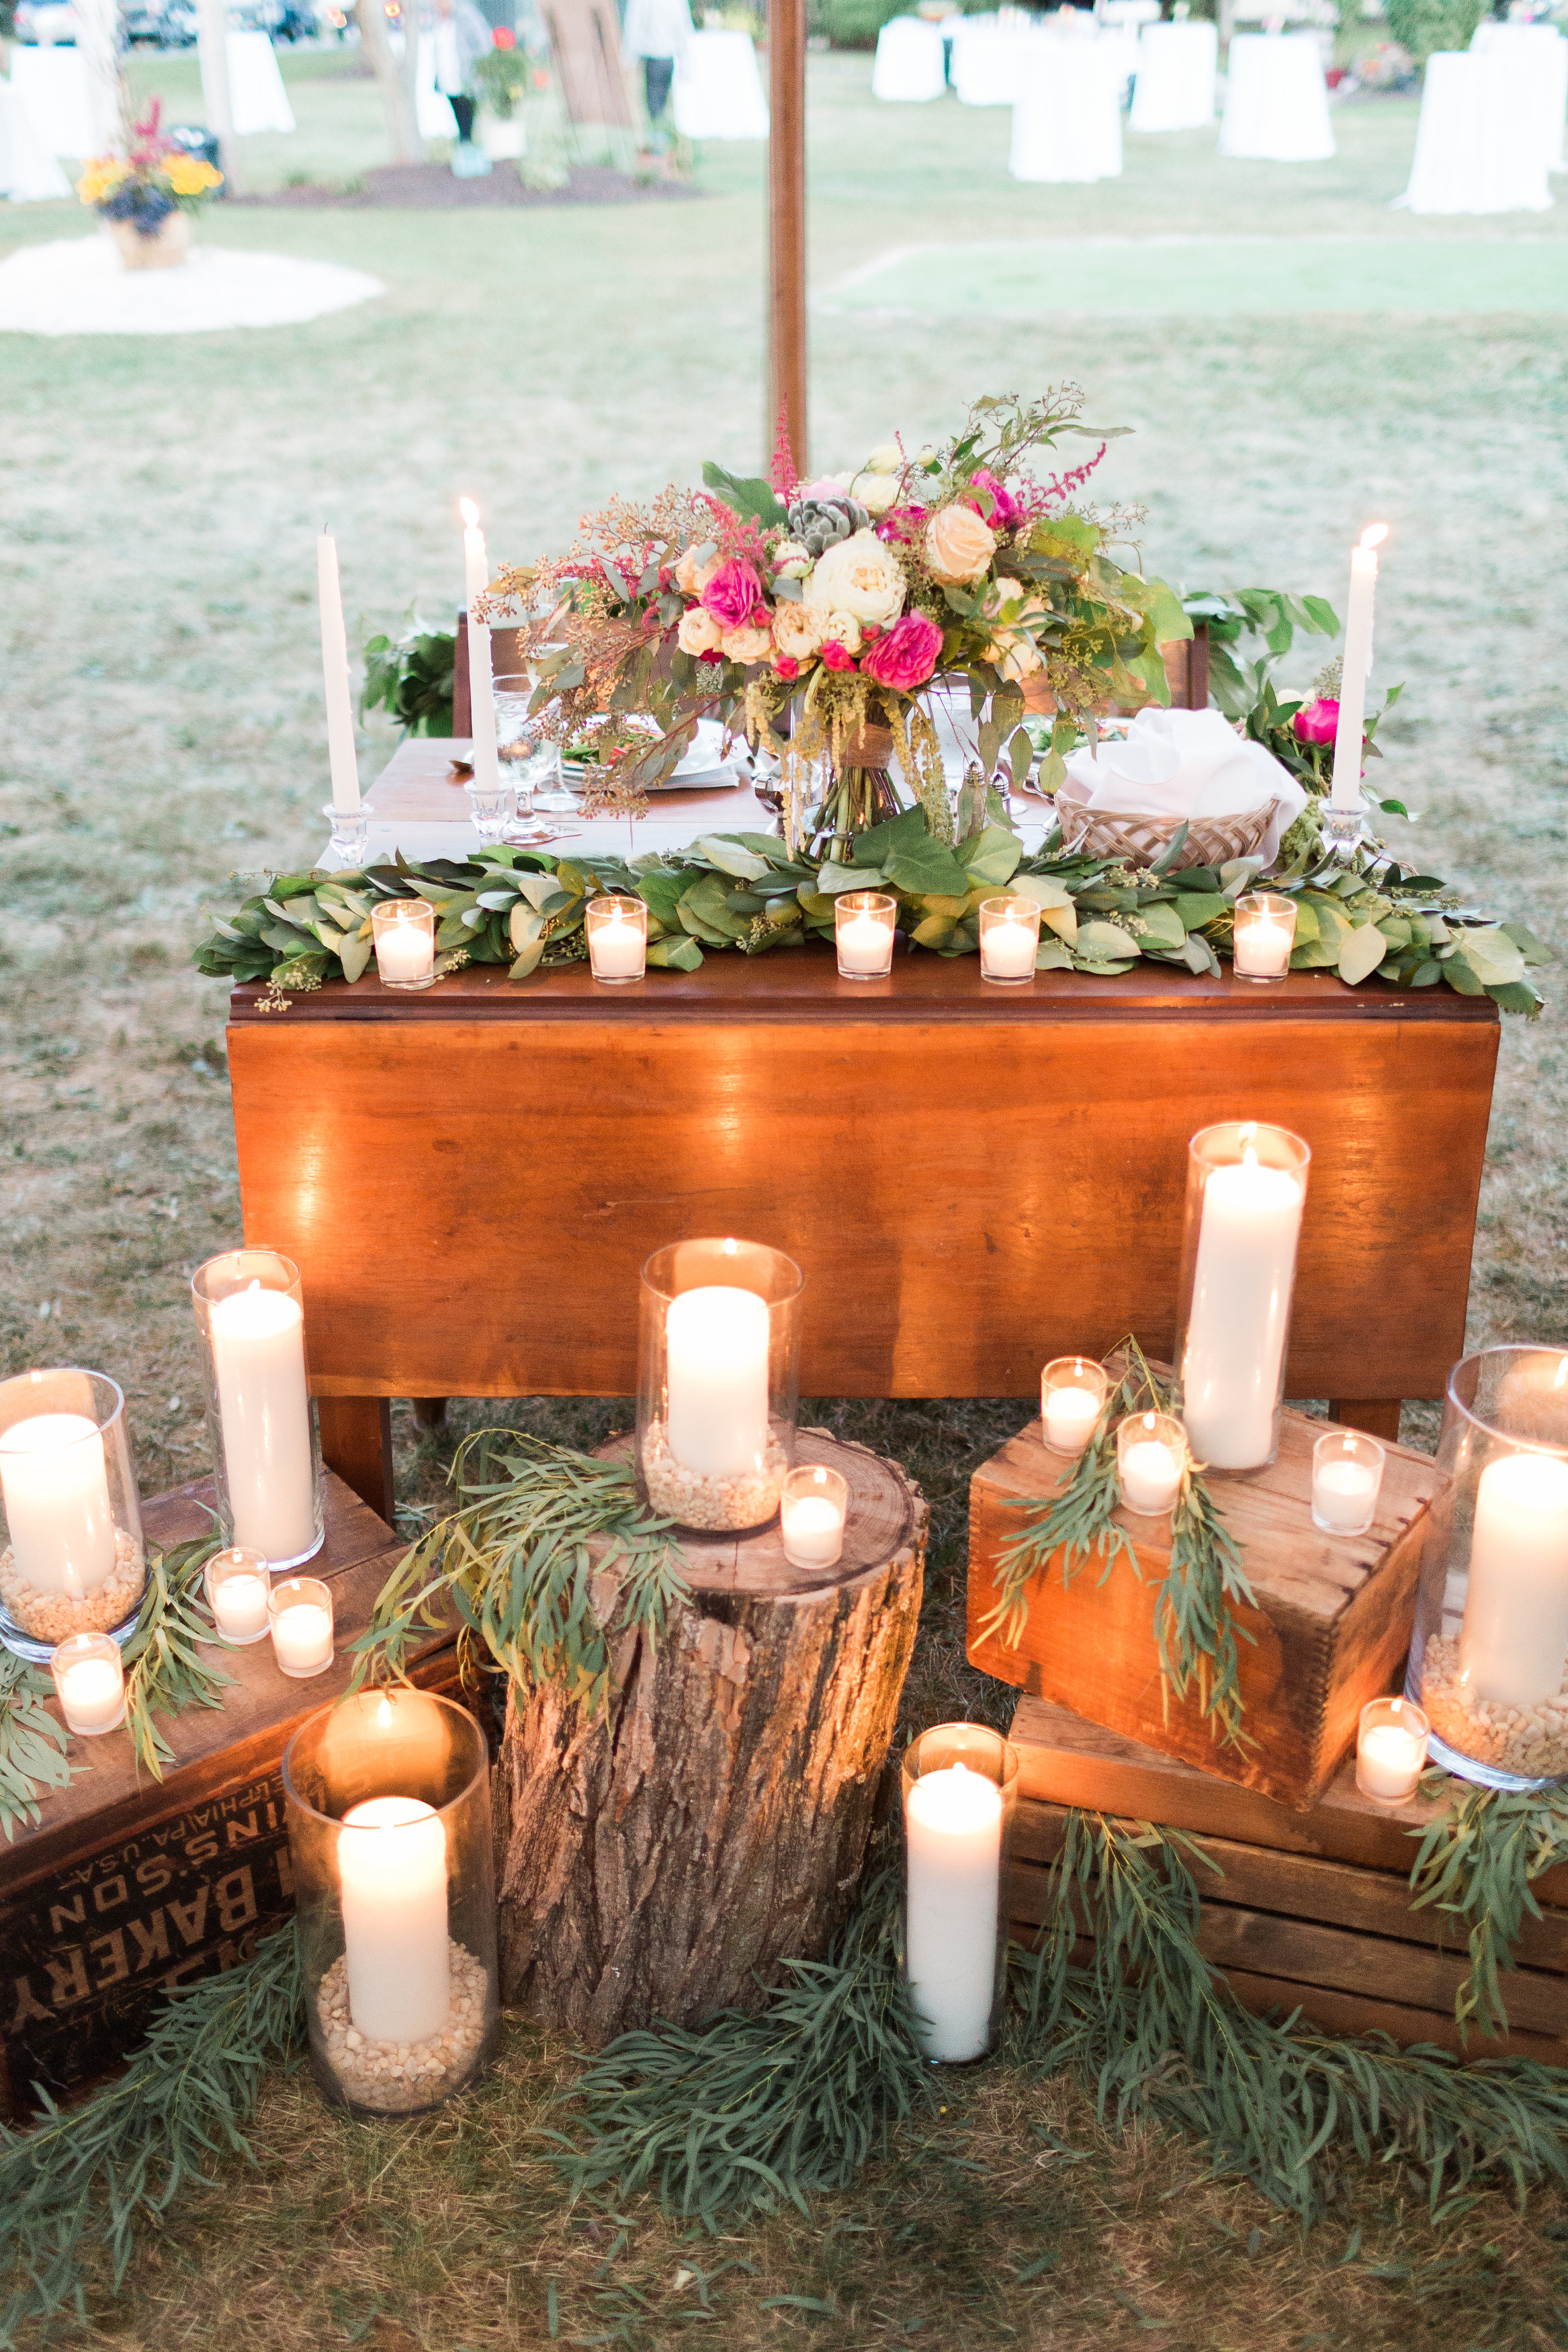 Vintage Farm-style Sweetheart Table